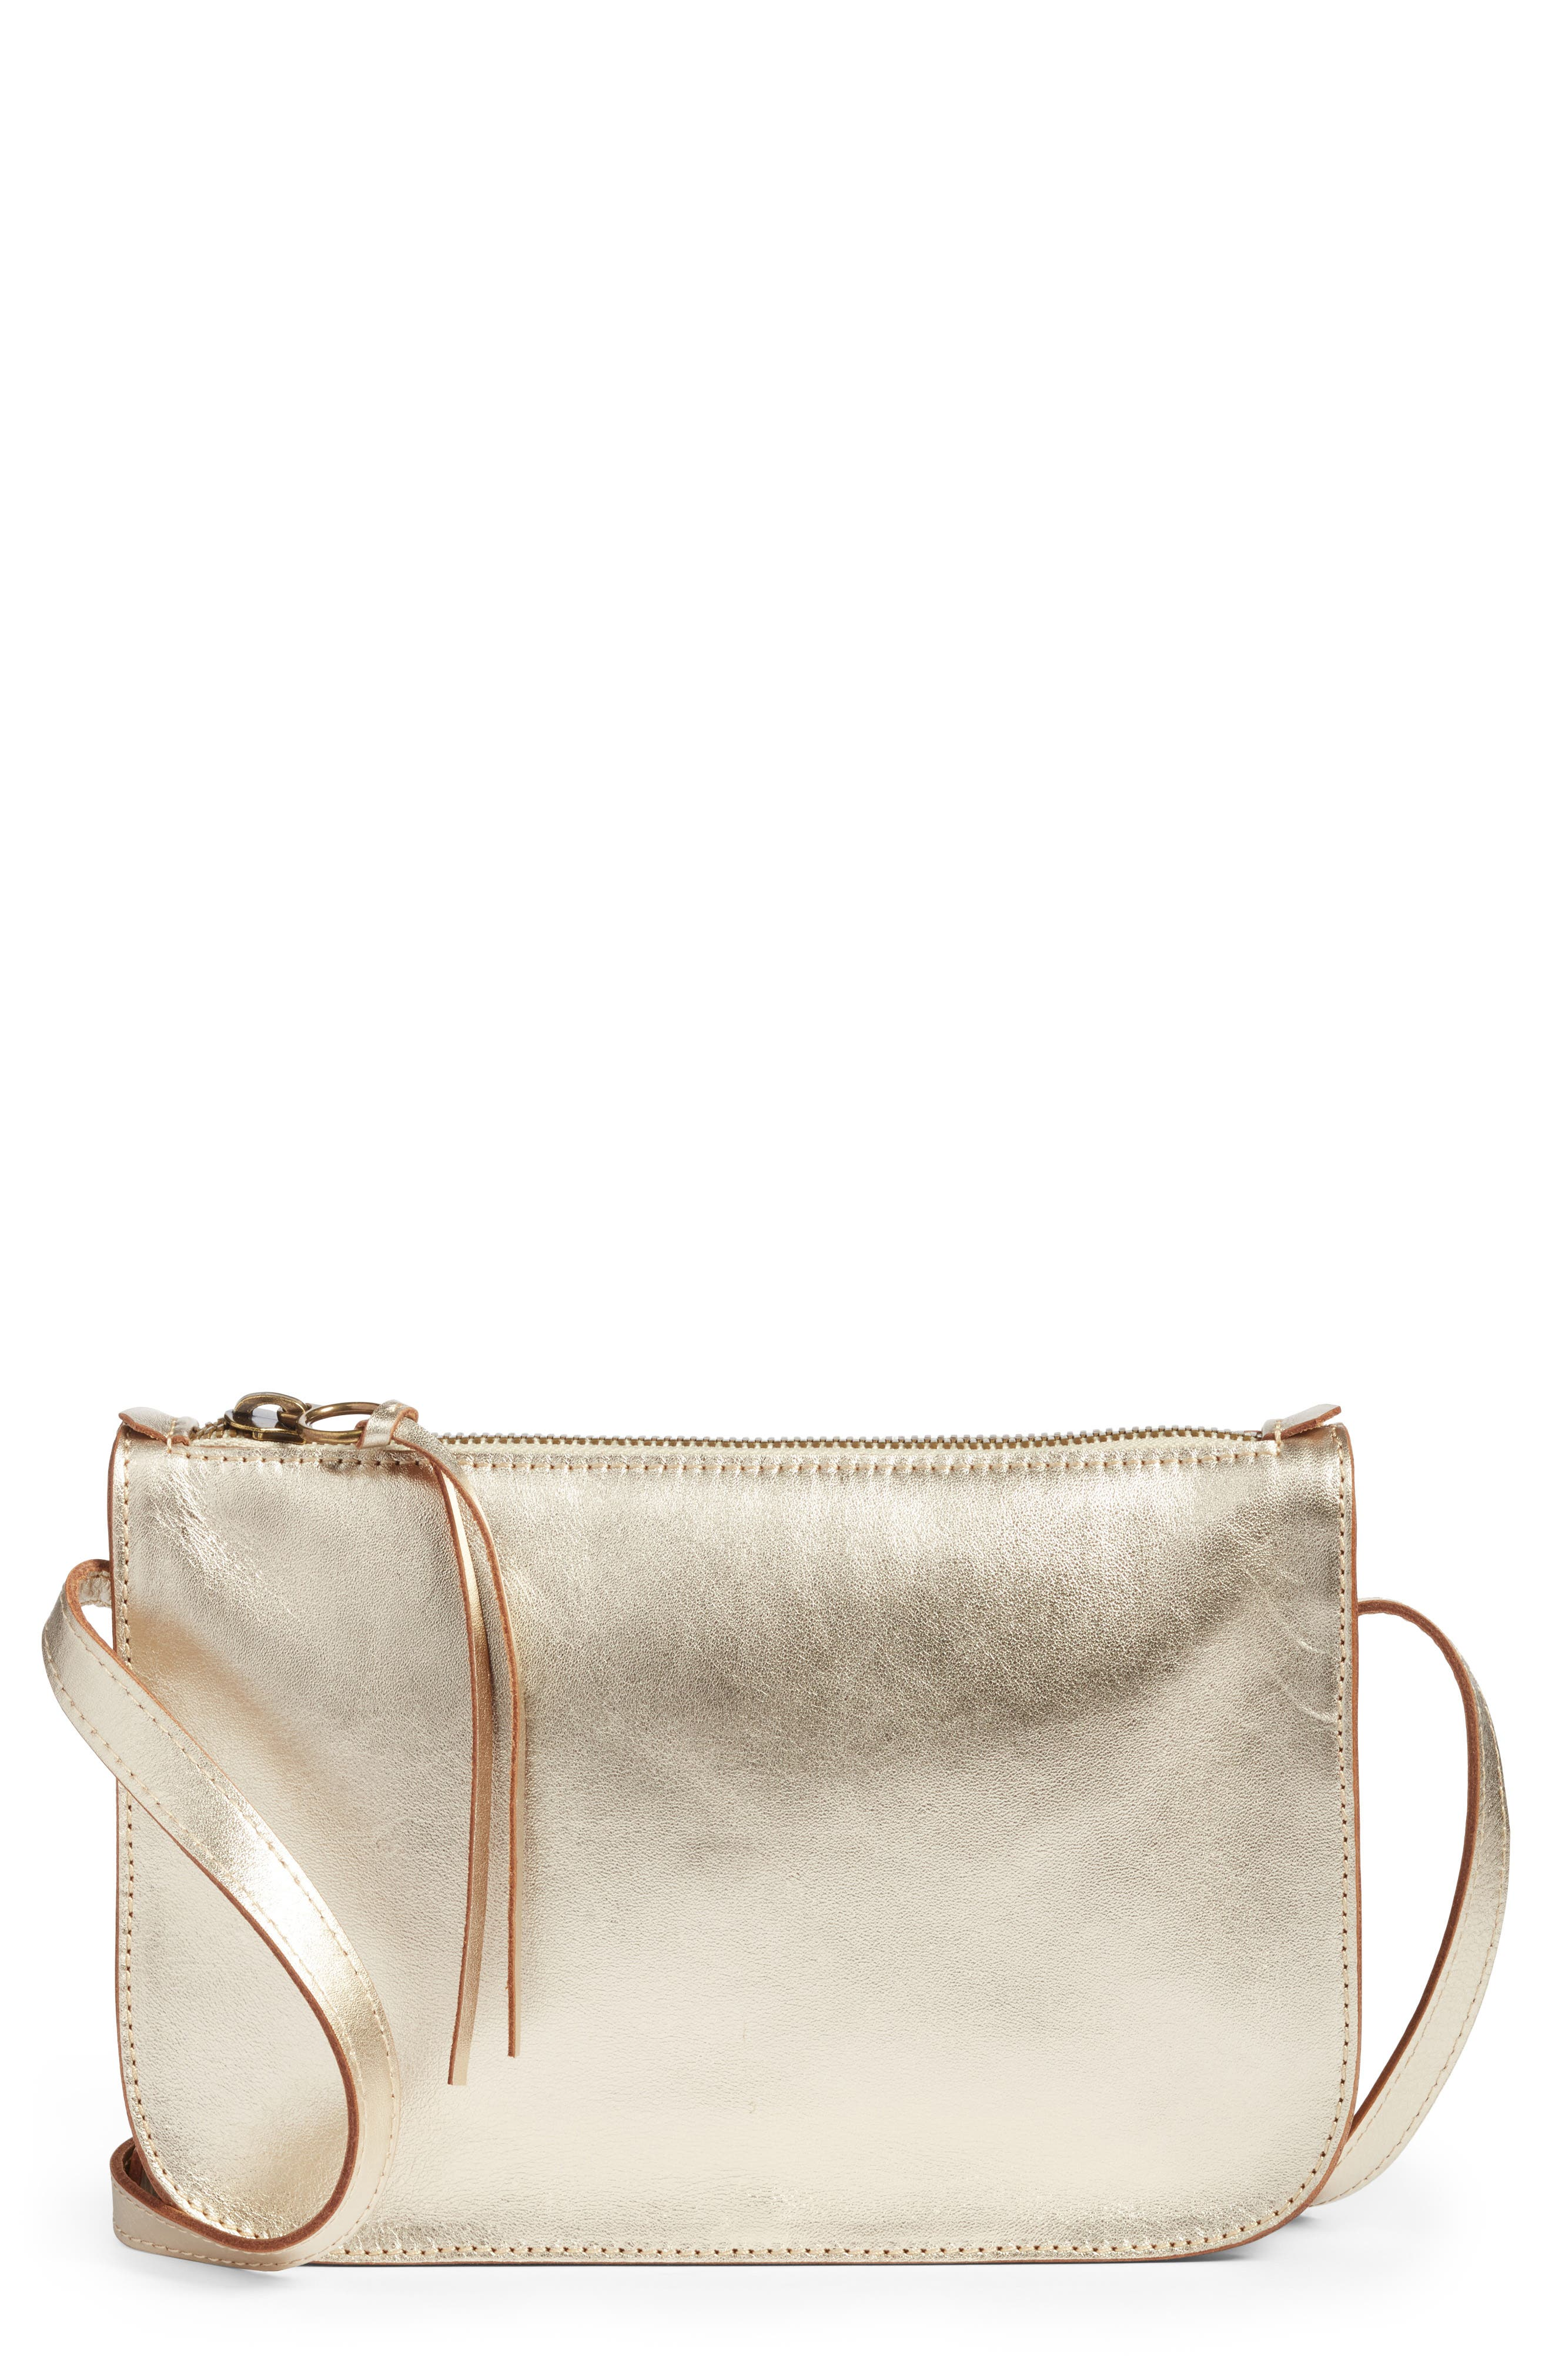 Leather Crossbody Bag,                             Main thumbnail 1, color,                             710